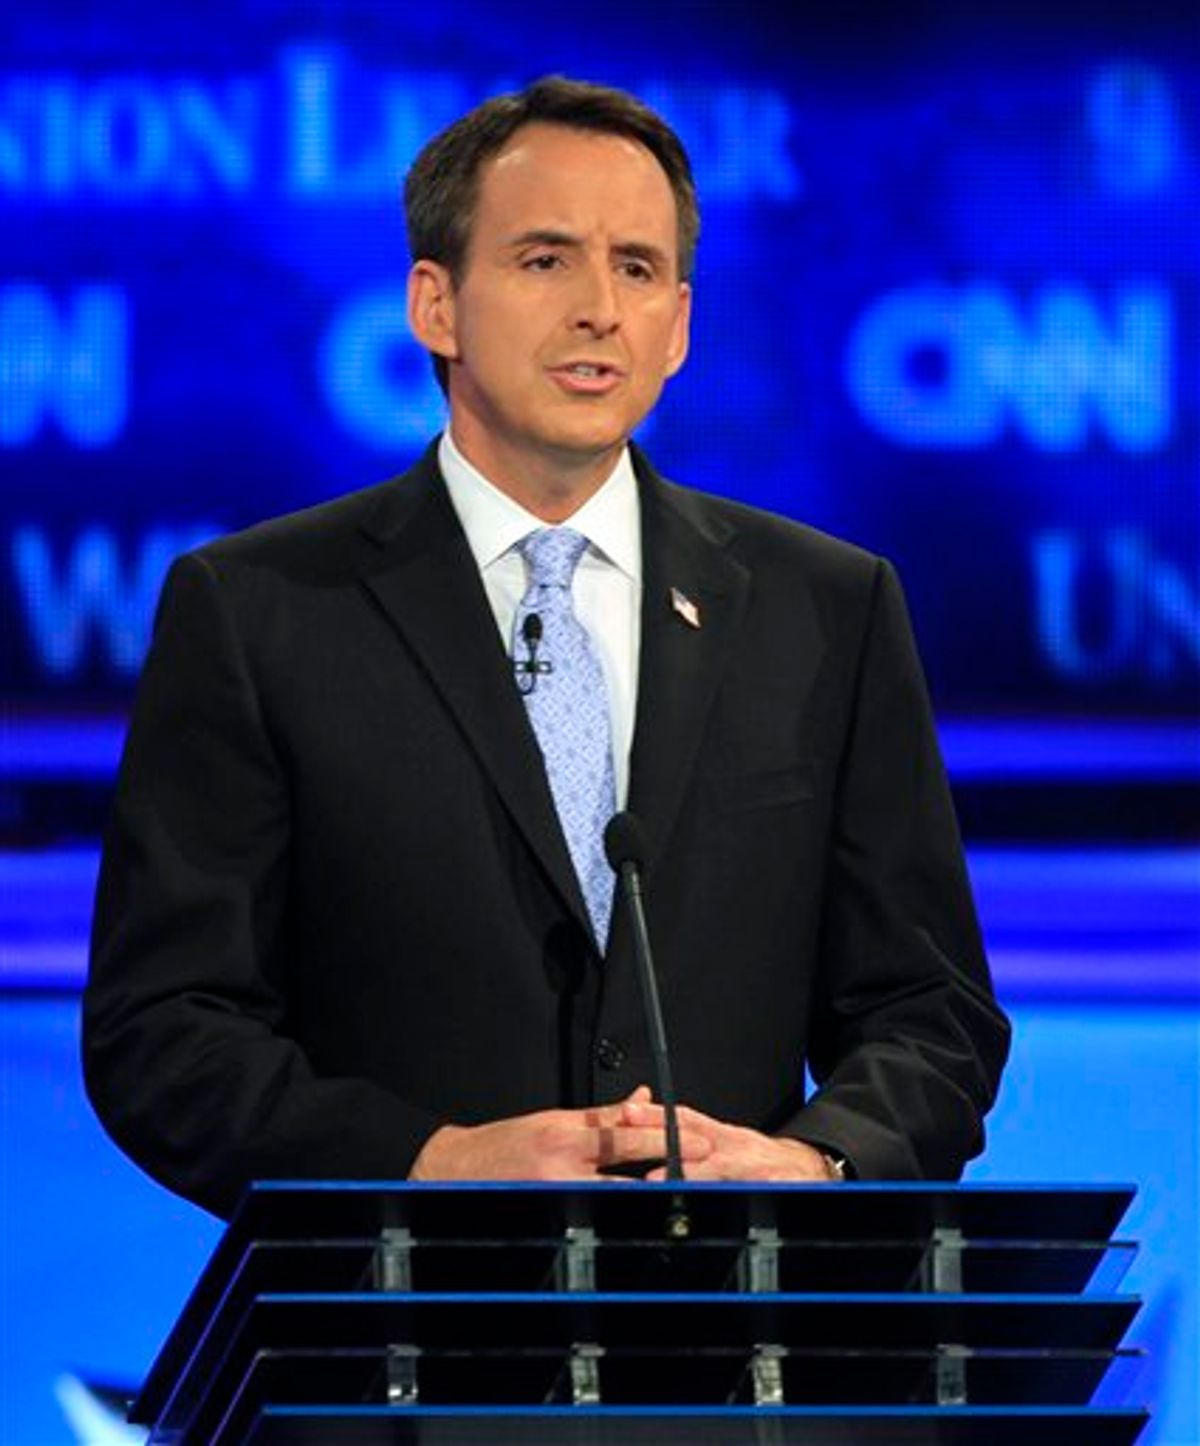 Former Minnesota Gov. Tim Pawlenty answers a question during the first New Hampshire Republican presidential debate at St. Anselm College in Manchester, N.H., Monday, June 13, 2011. (AP Photo/Jim Cole) (AP)